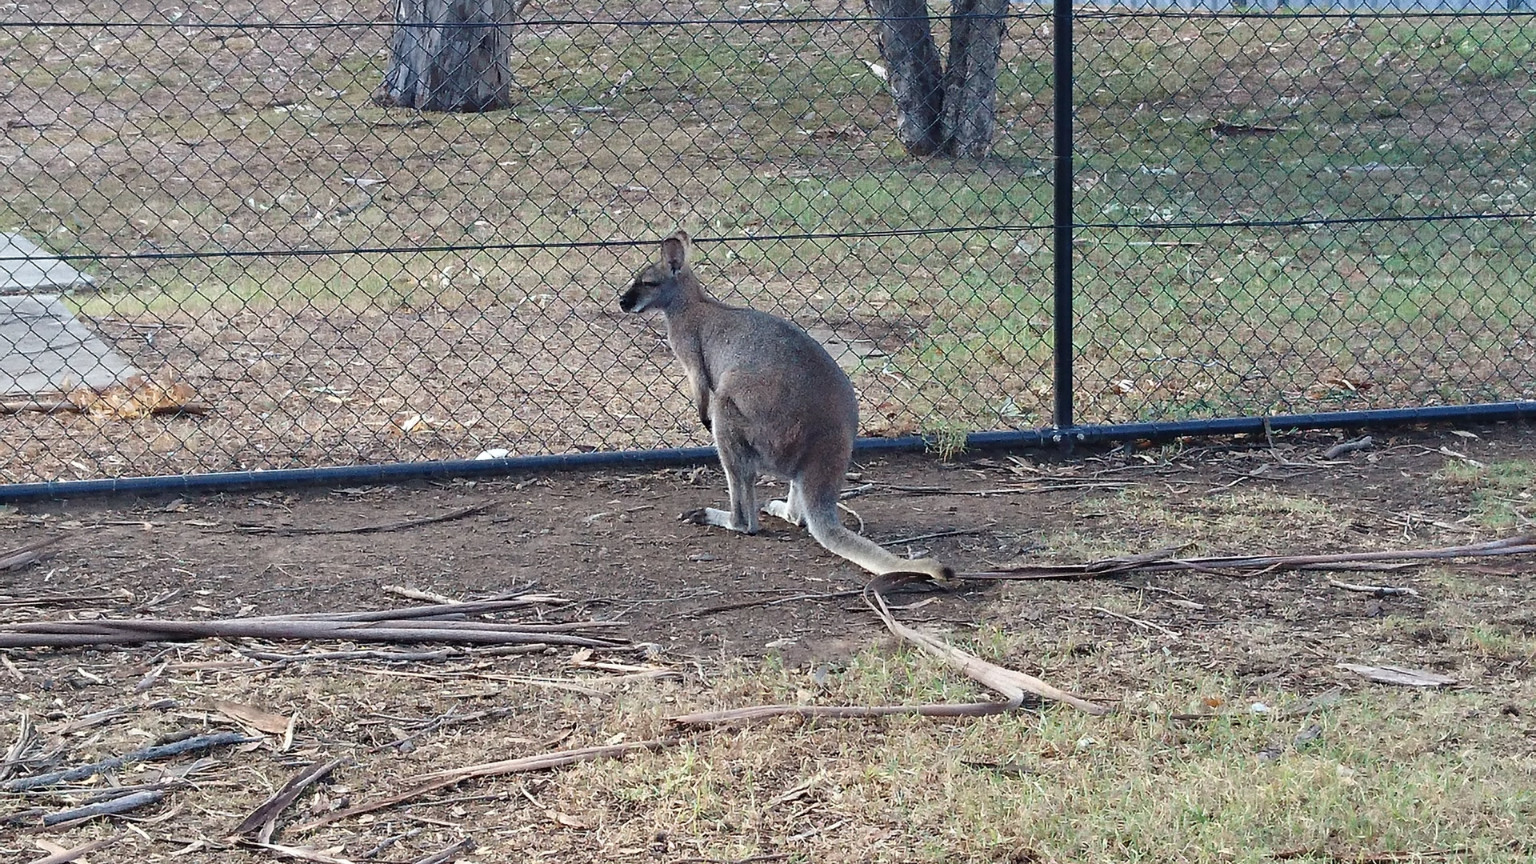 Kangaroos at the Wildlife Exhibit